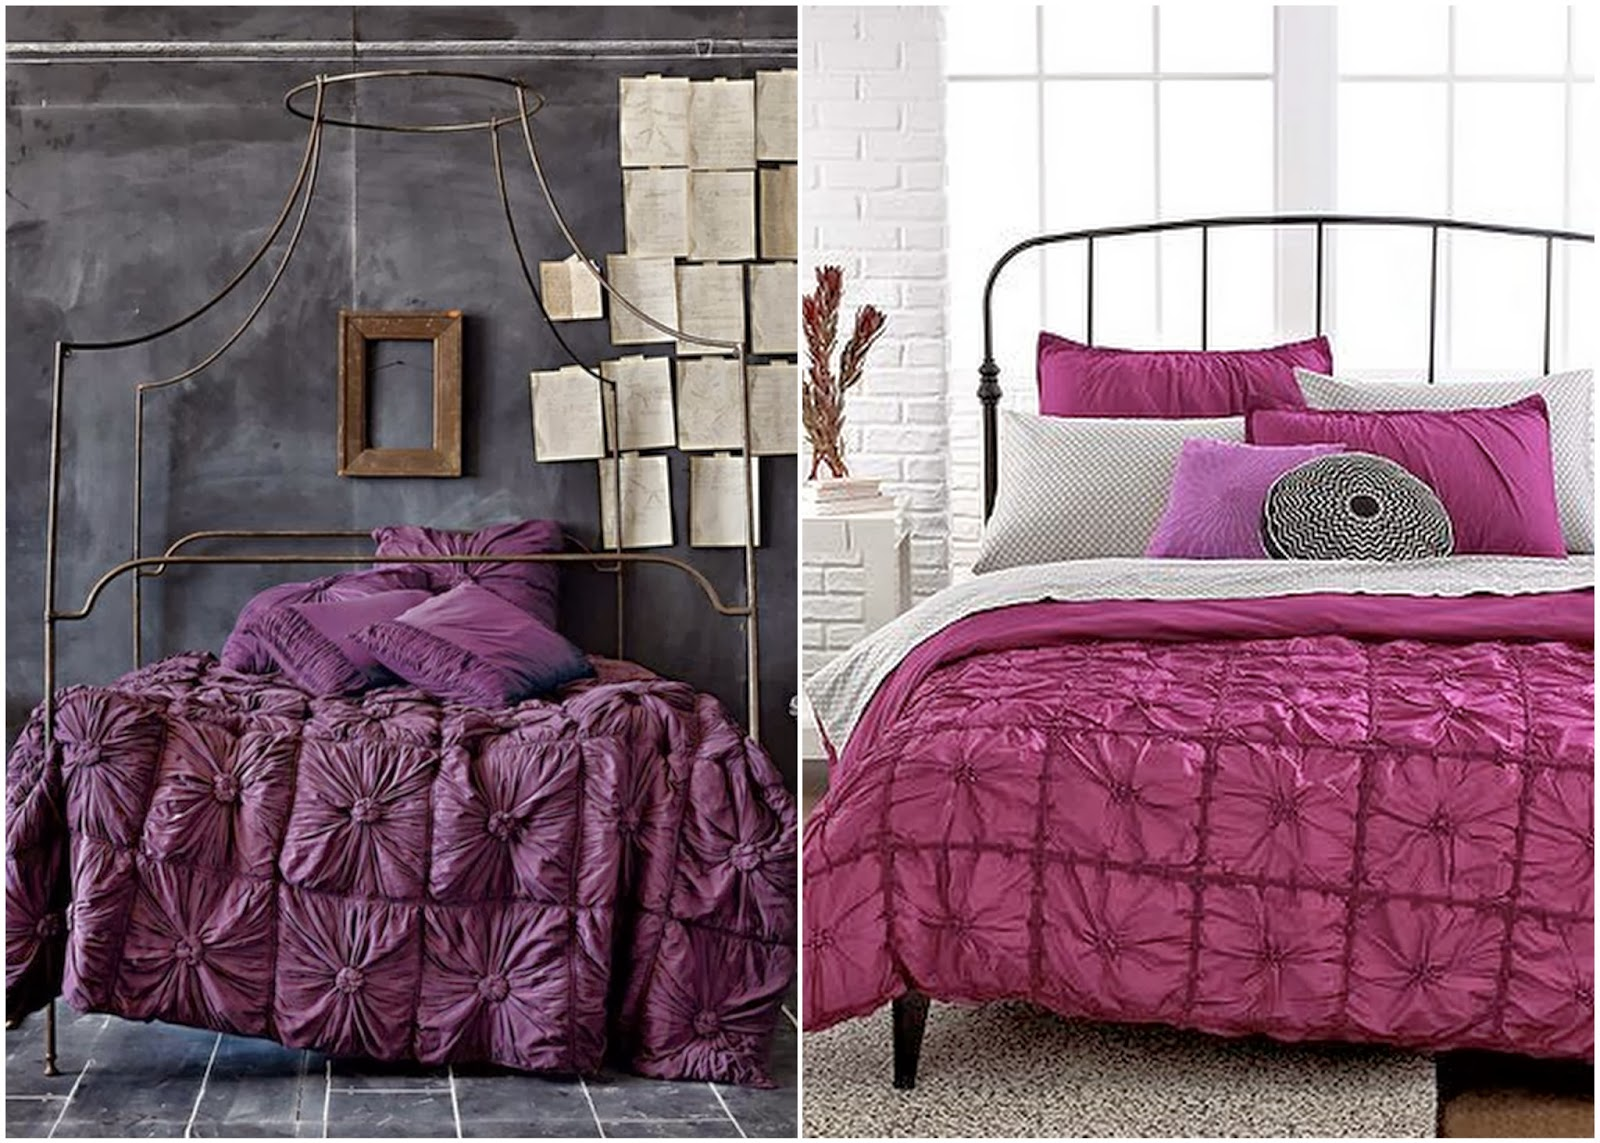 Anthropologie bedding - Anthropologie Rosette Quilt For 288 King Or Knotted 3 Piece Duvet Cover Set For 119 King Plus 2 Shams